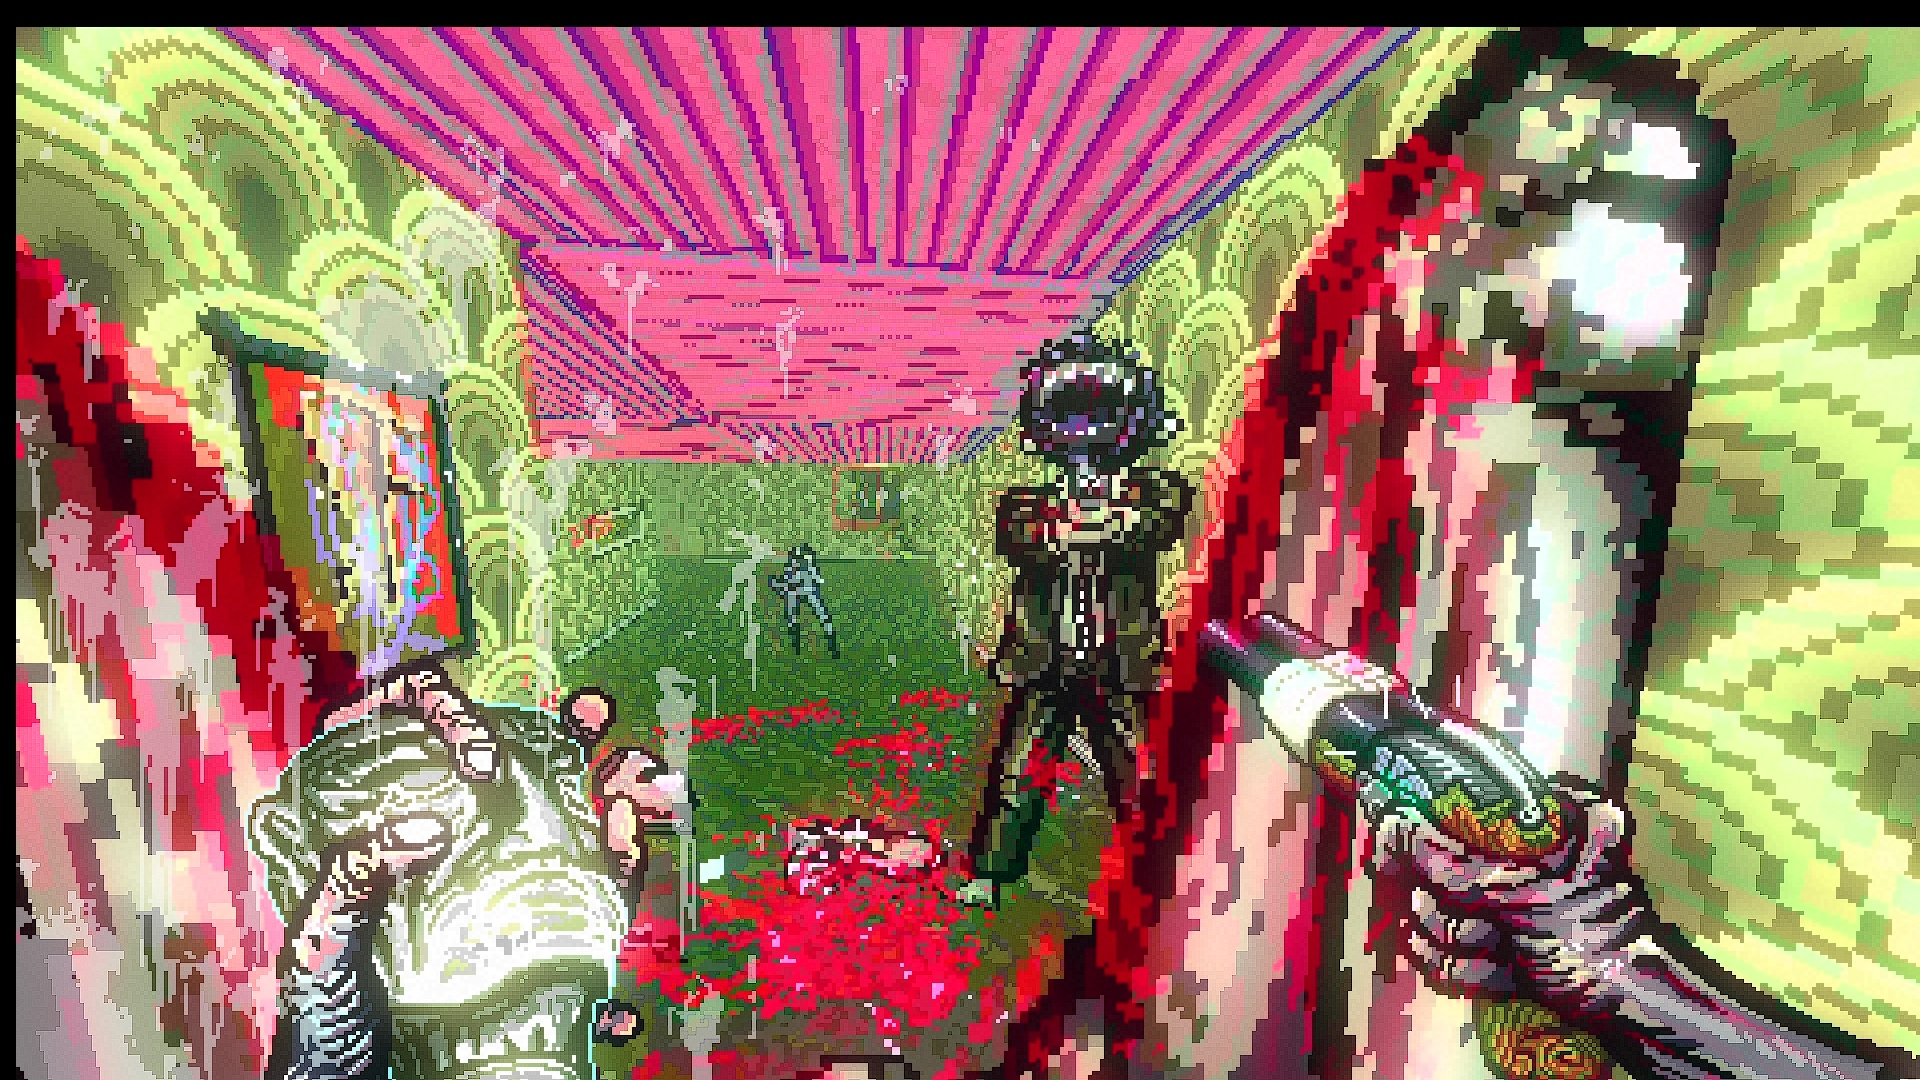 A gory (though it's so heavily stylised in 2.5D that it's not tacky) scene. A huge bloody leg leans on the right wall. Behind it there's blood and gibs on the floor, and a monster in a suit points a gun at the player. The walls are green, the ceiling pink.